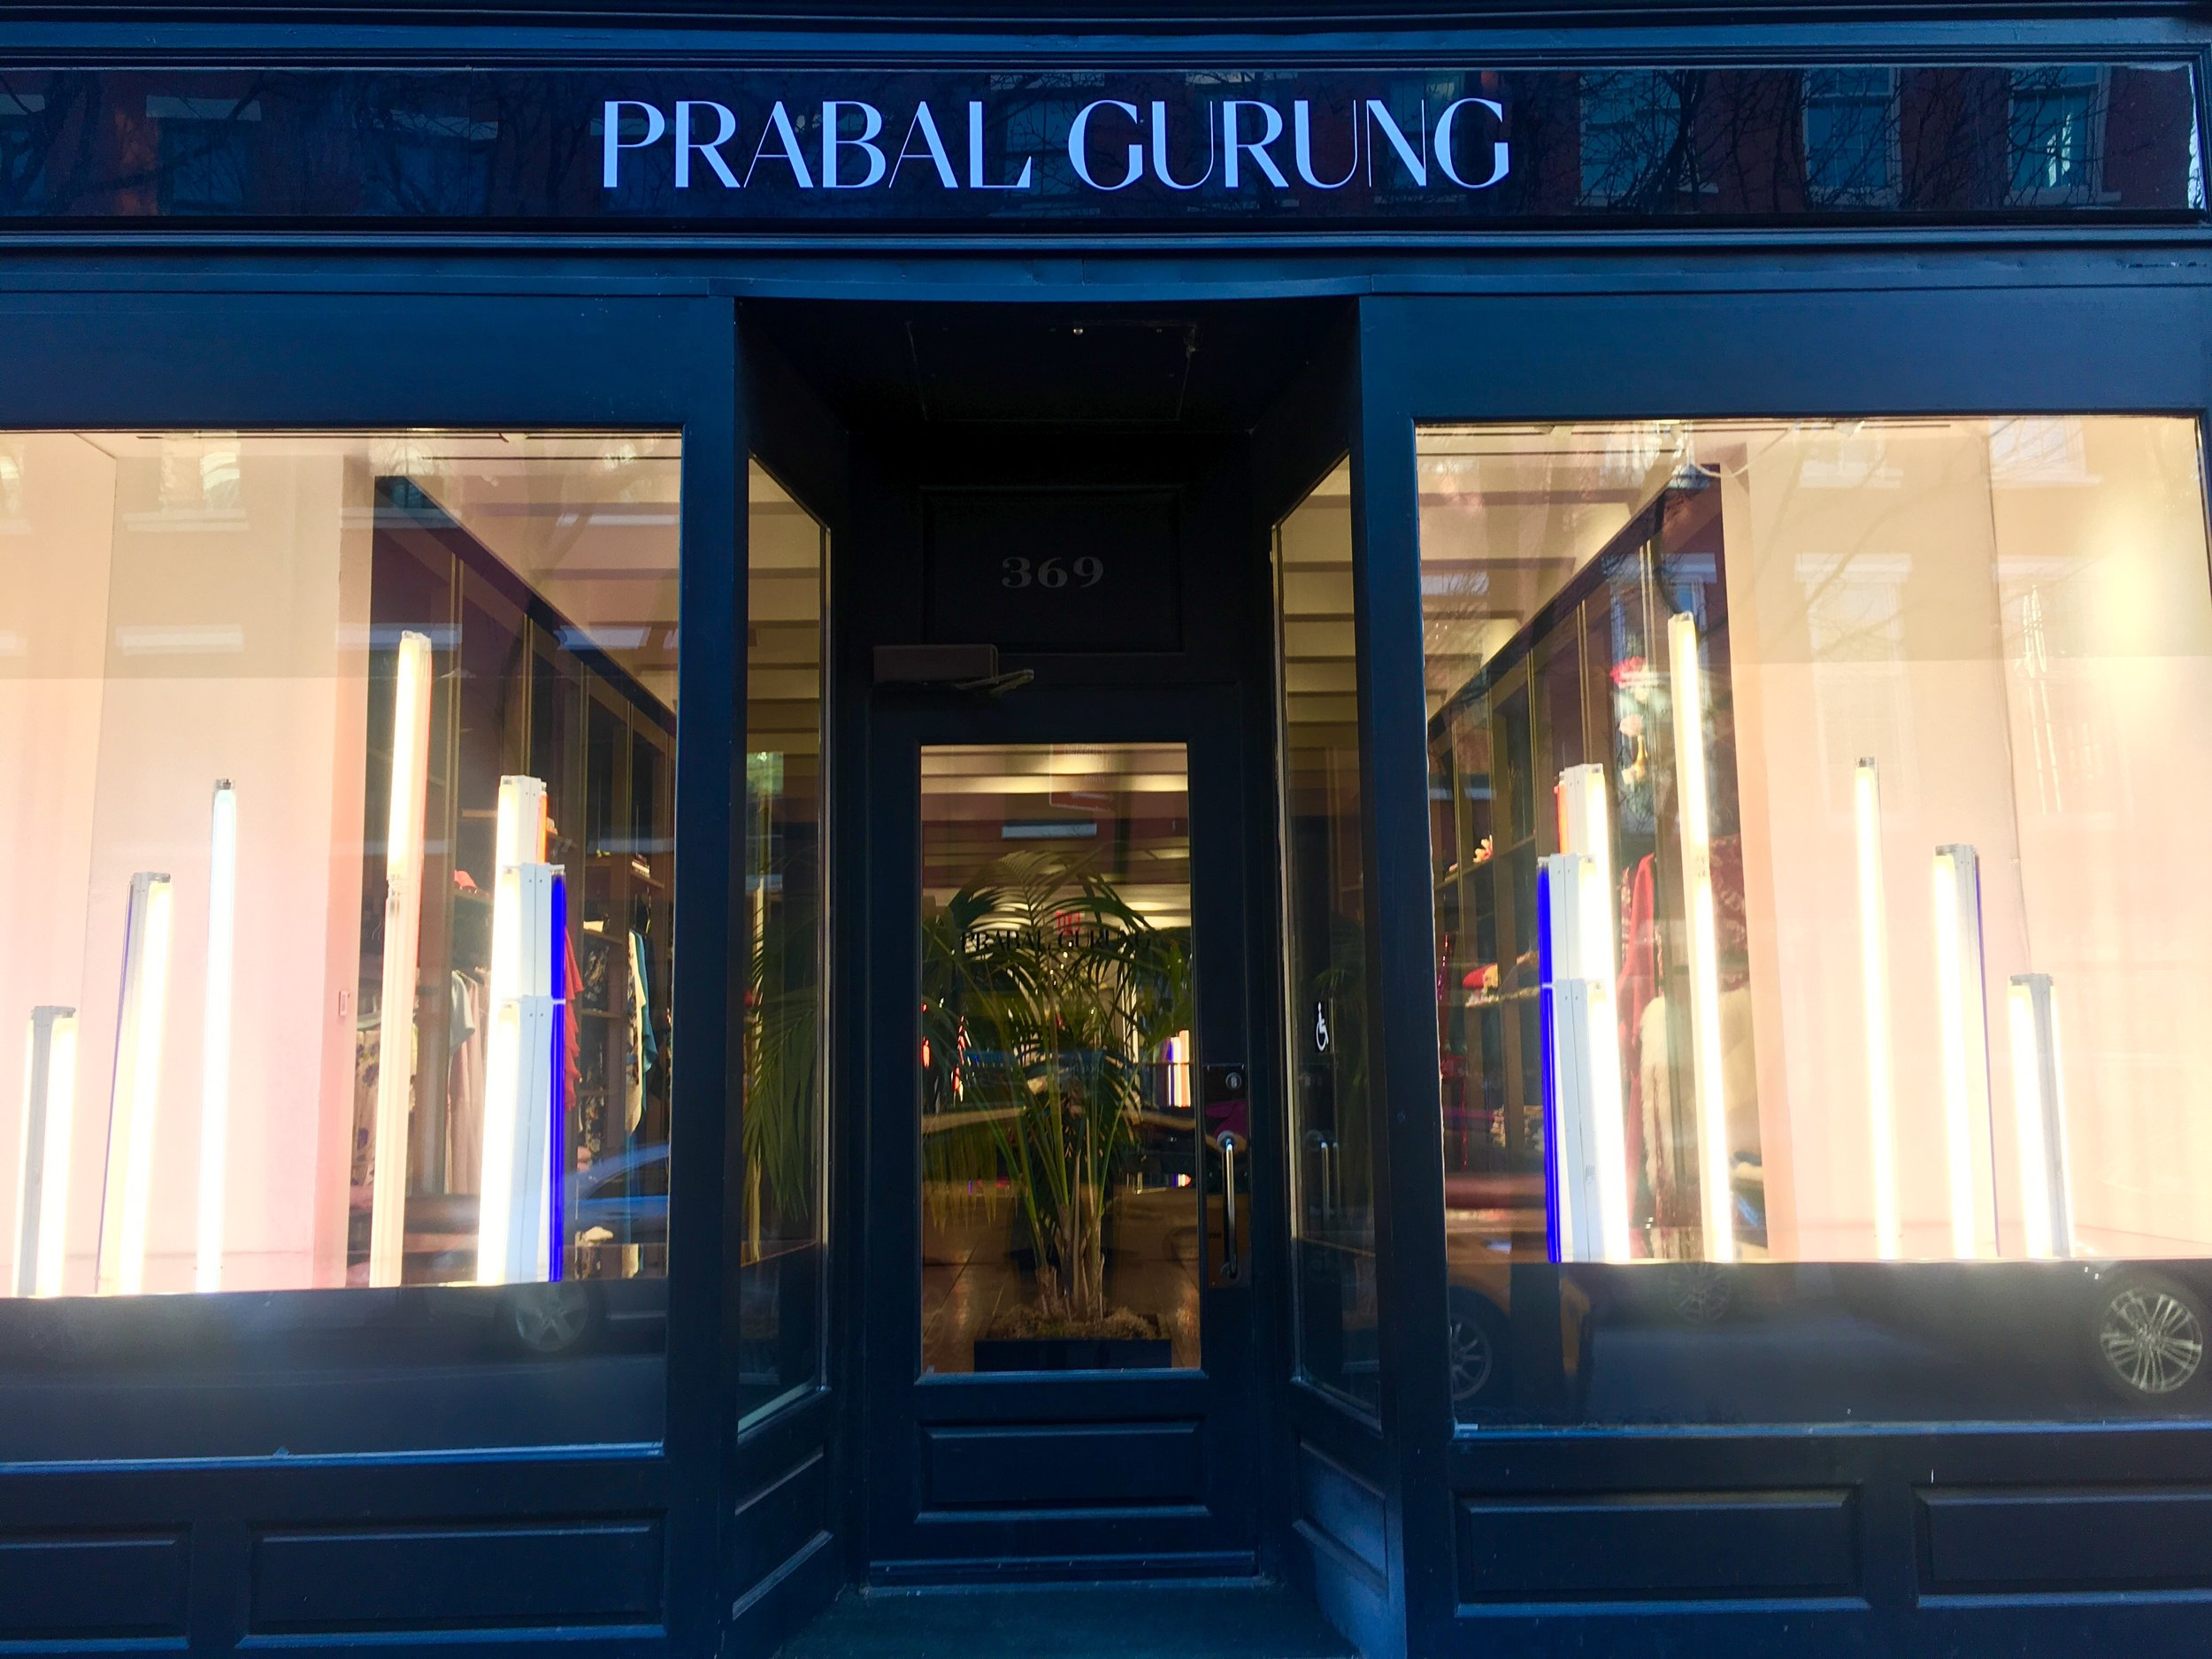 Prabal Gurung and Edward Ross collaboration.